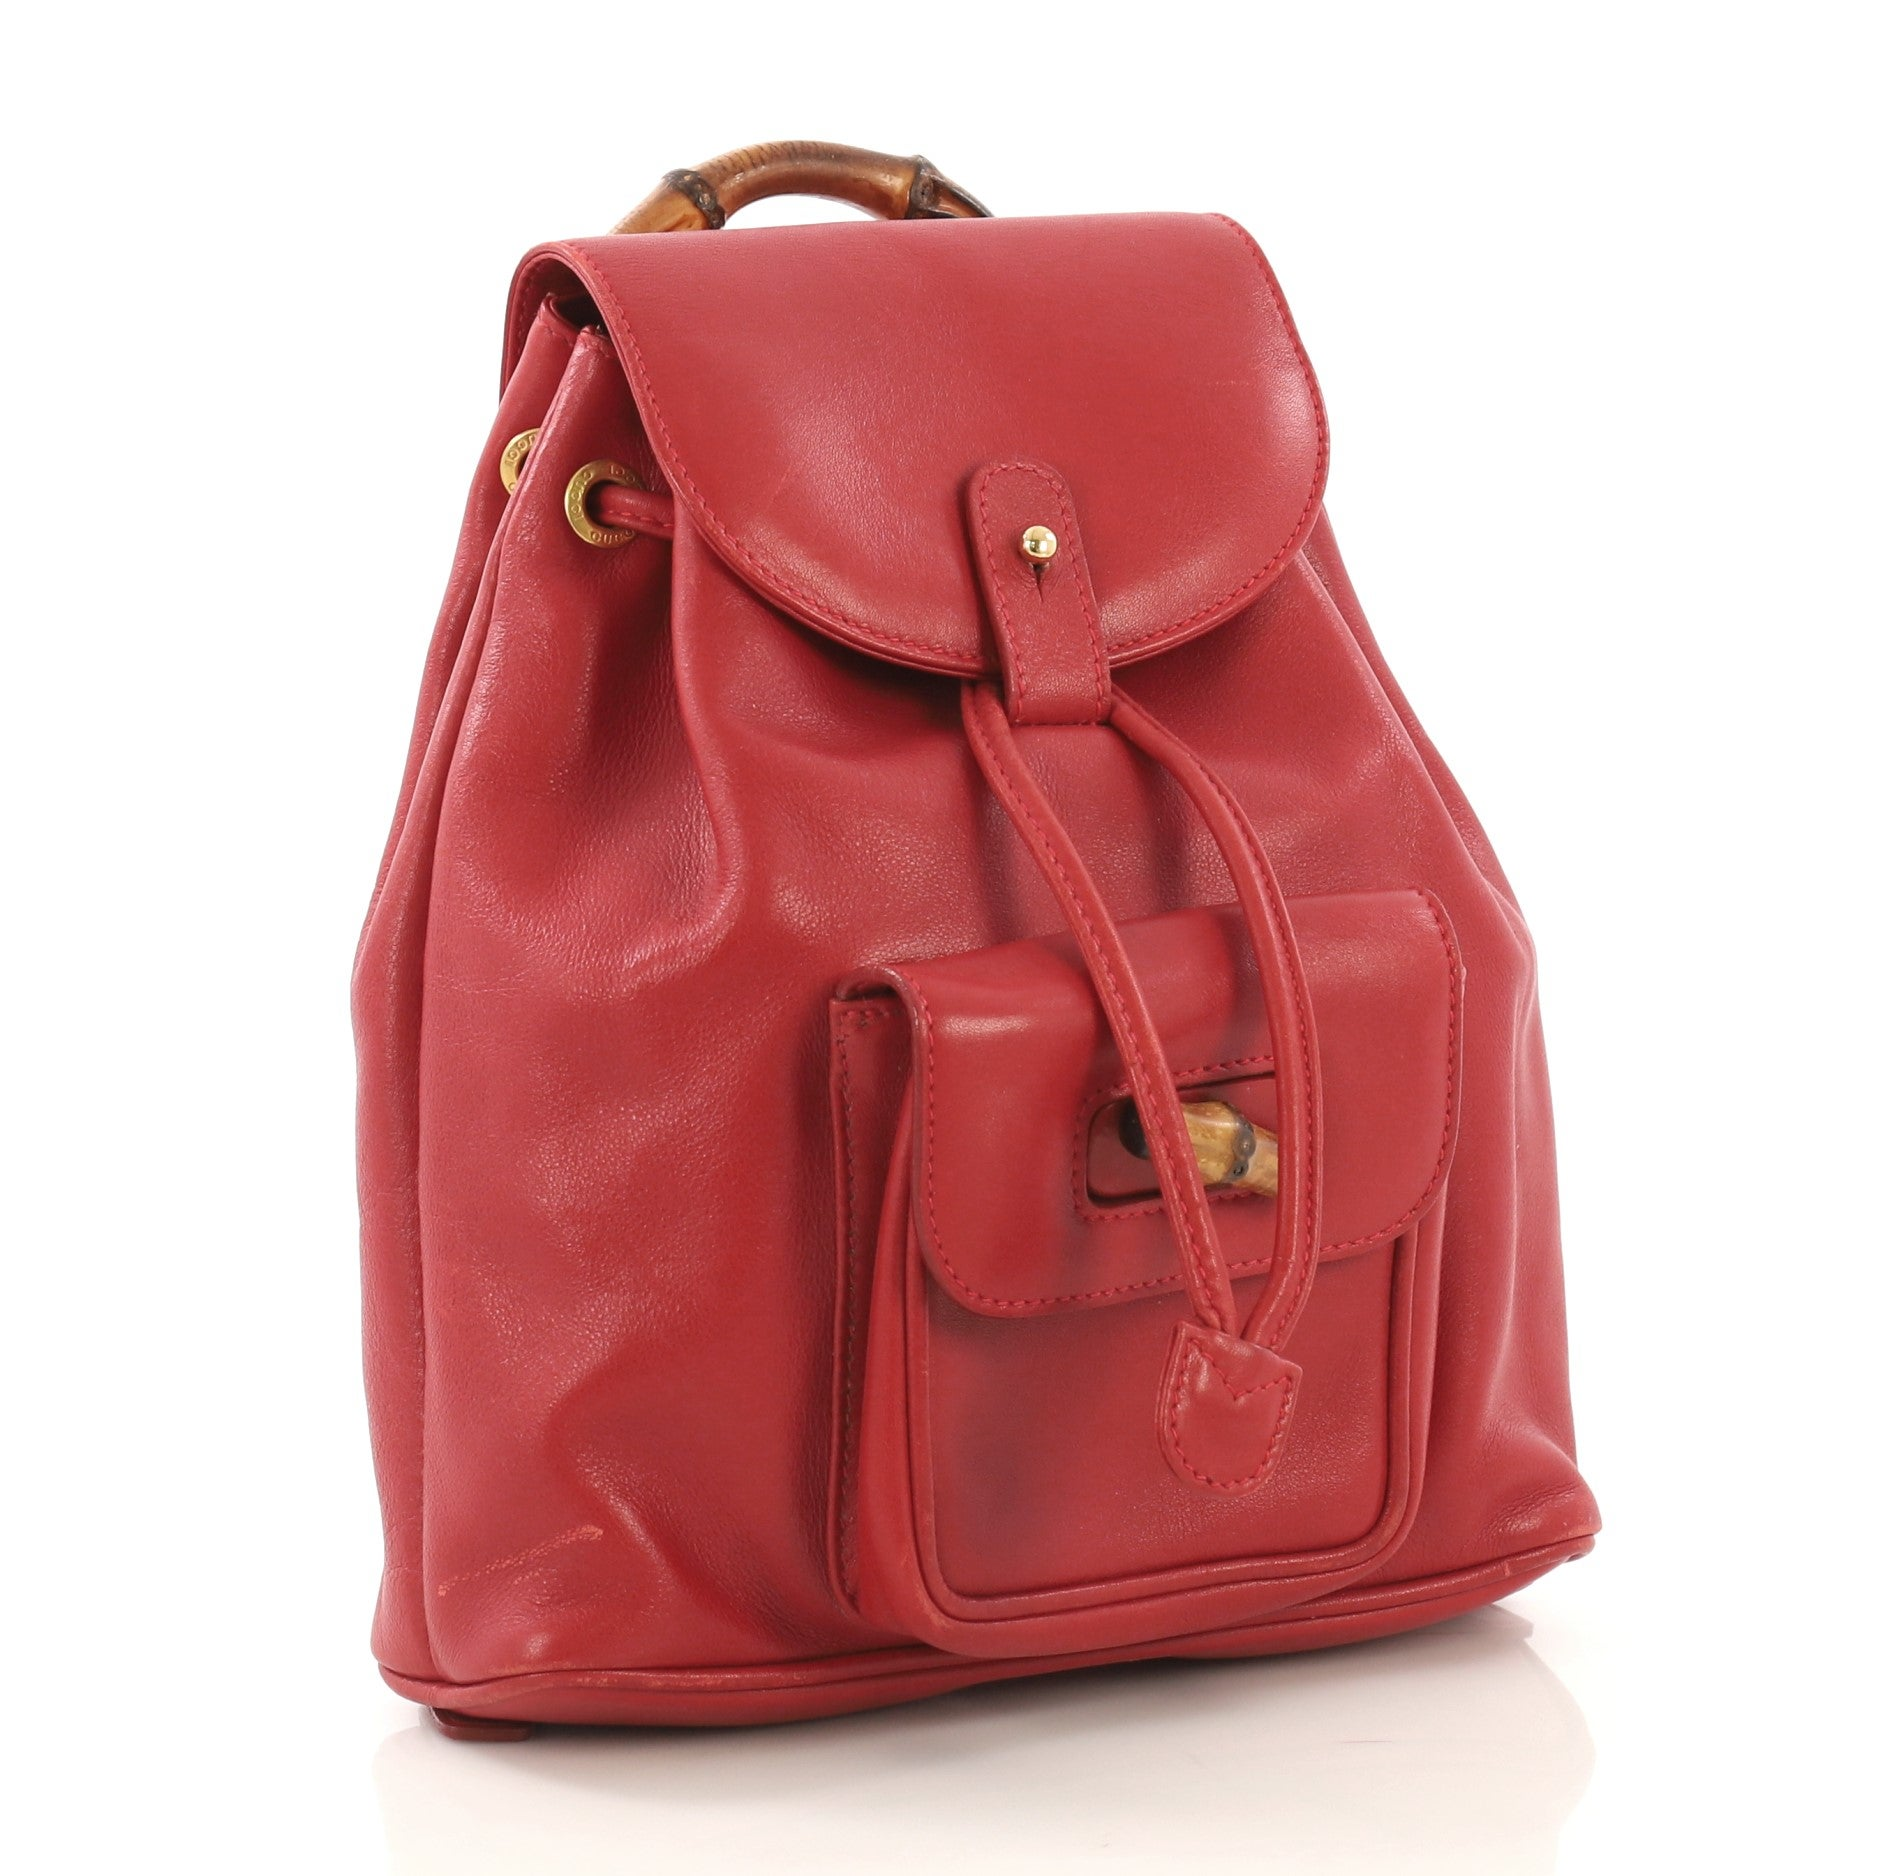 16a086b63 Red Leather Mini Backpack | The Shred Centre